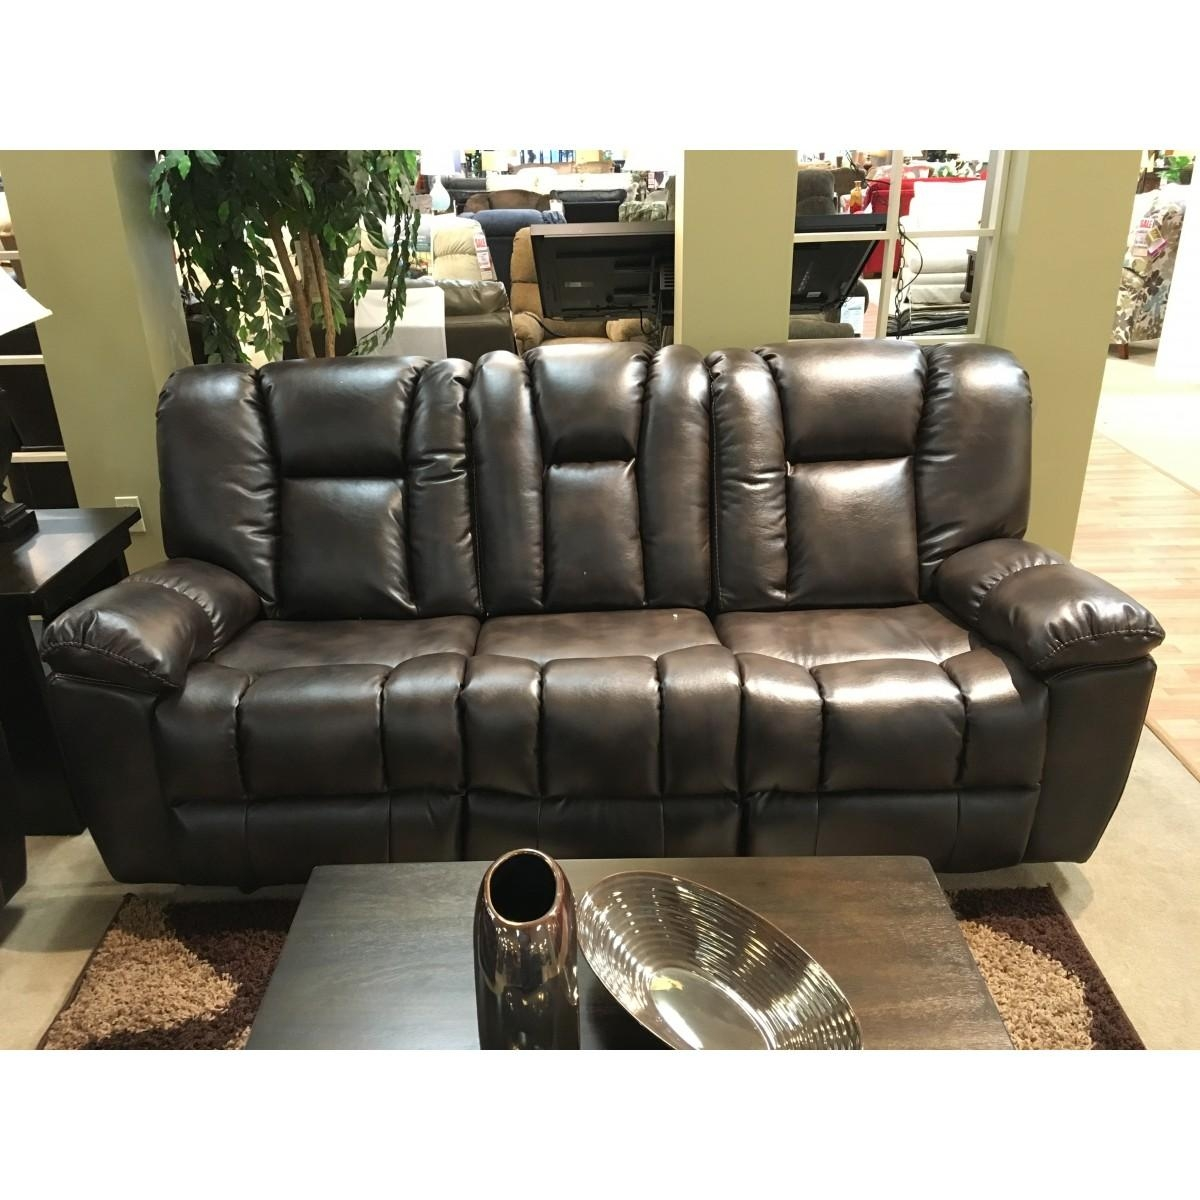 Cheers Furniture Glide Recliner Regarding Cheers Sofas (Image 3 of 20)